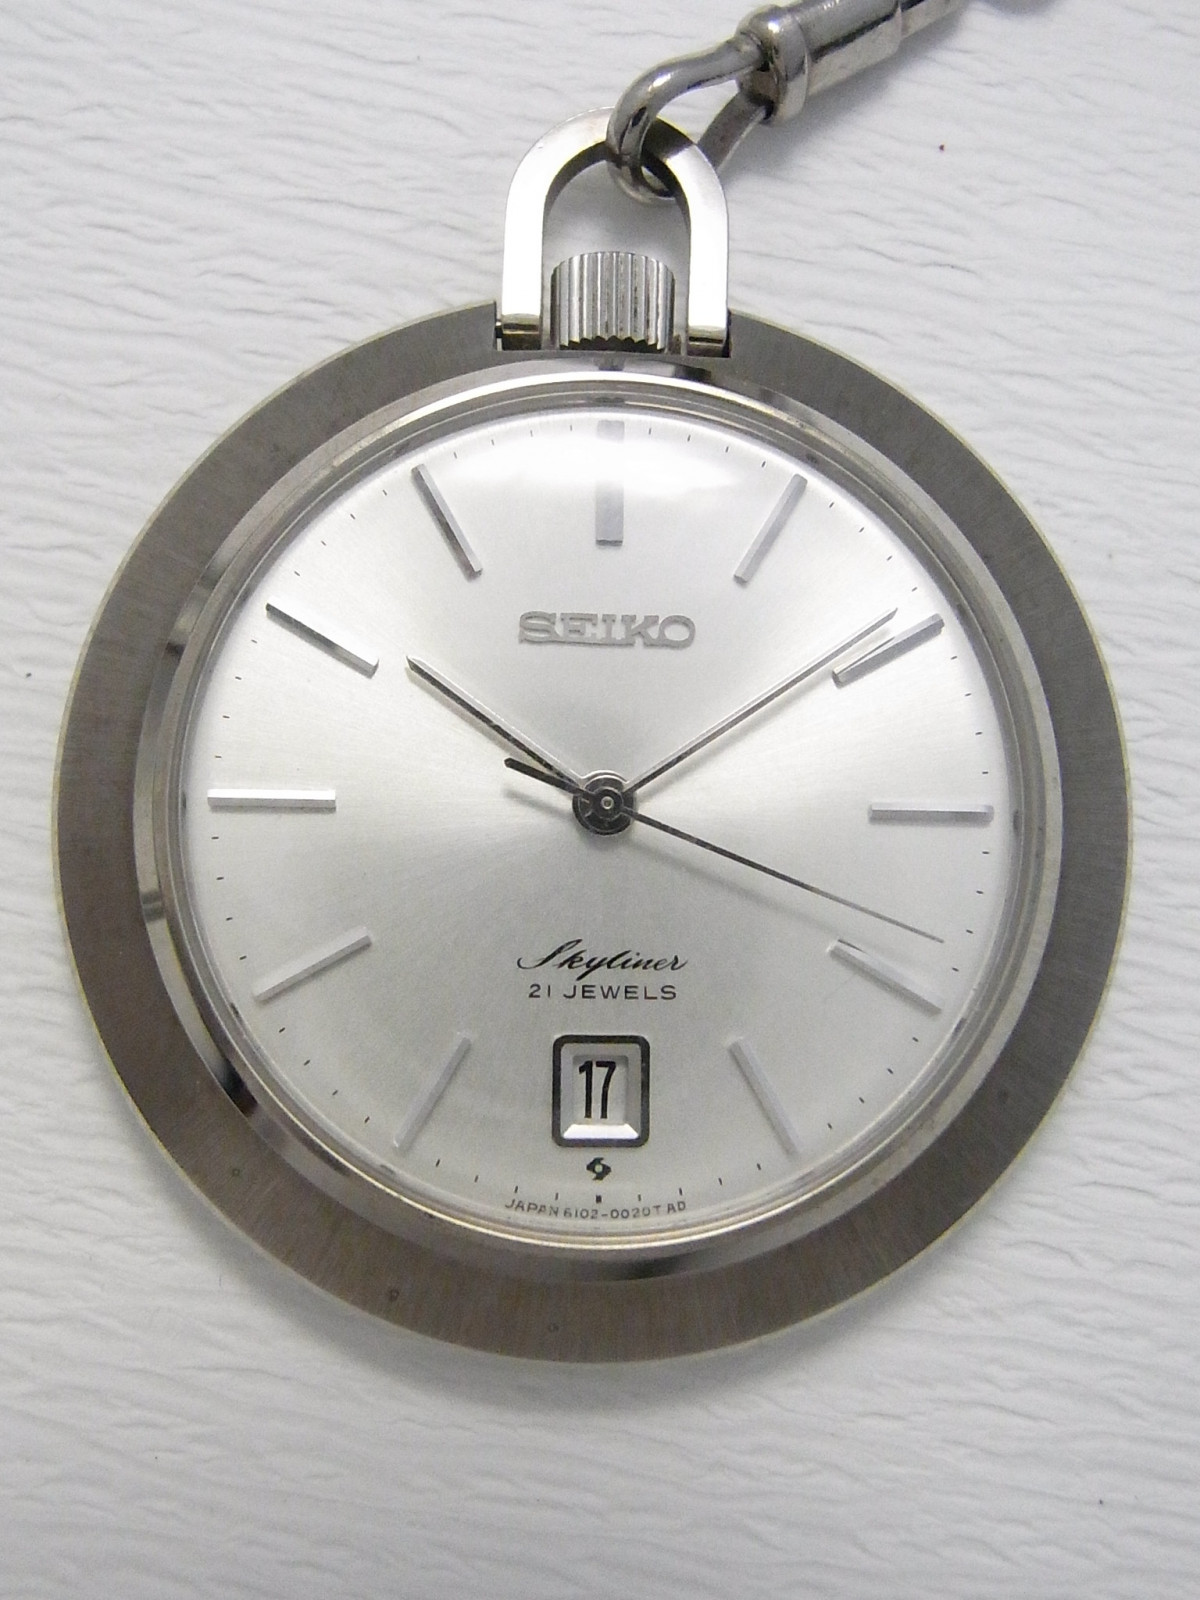 Pre-owned Seiko Pocket Watch 6102-0010 watch ($47) for sale - Timepeaks